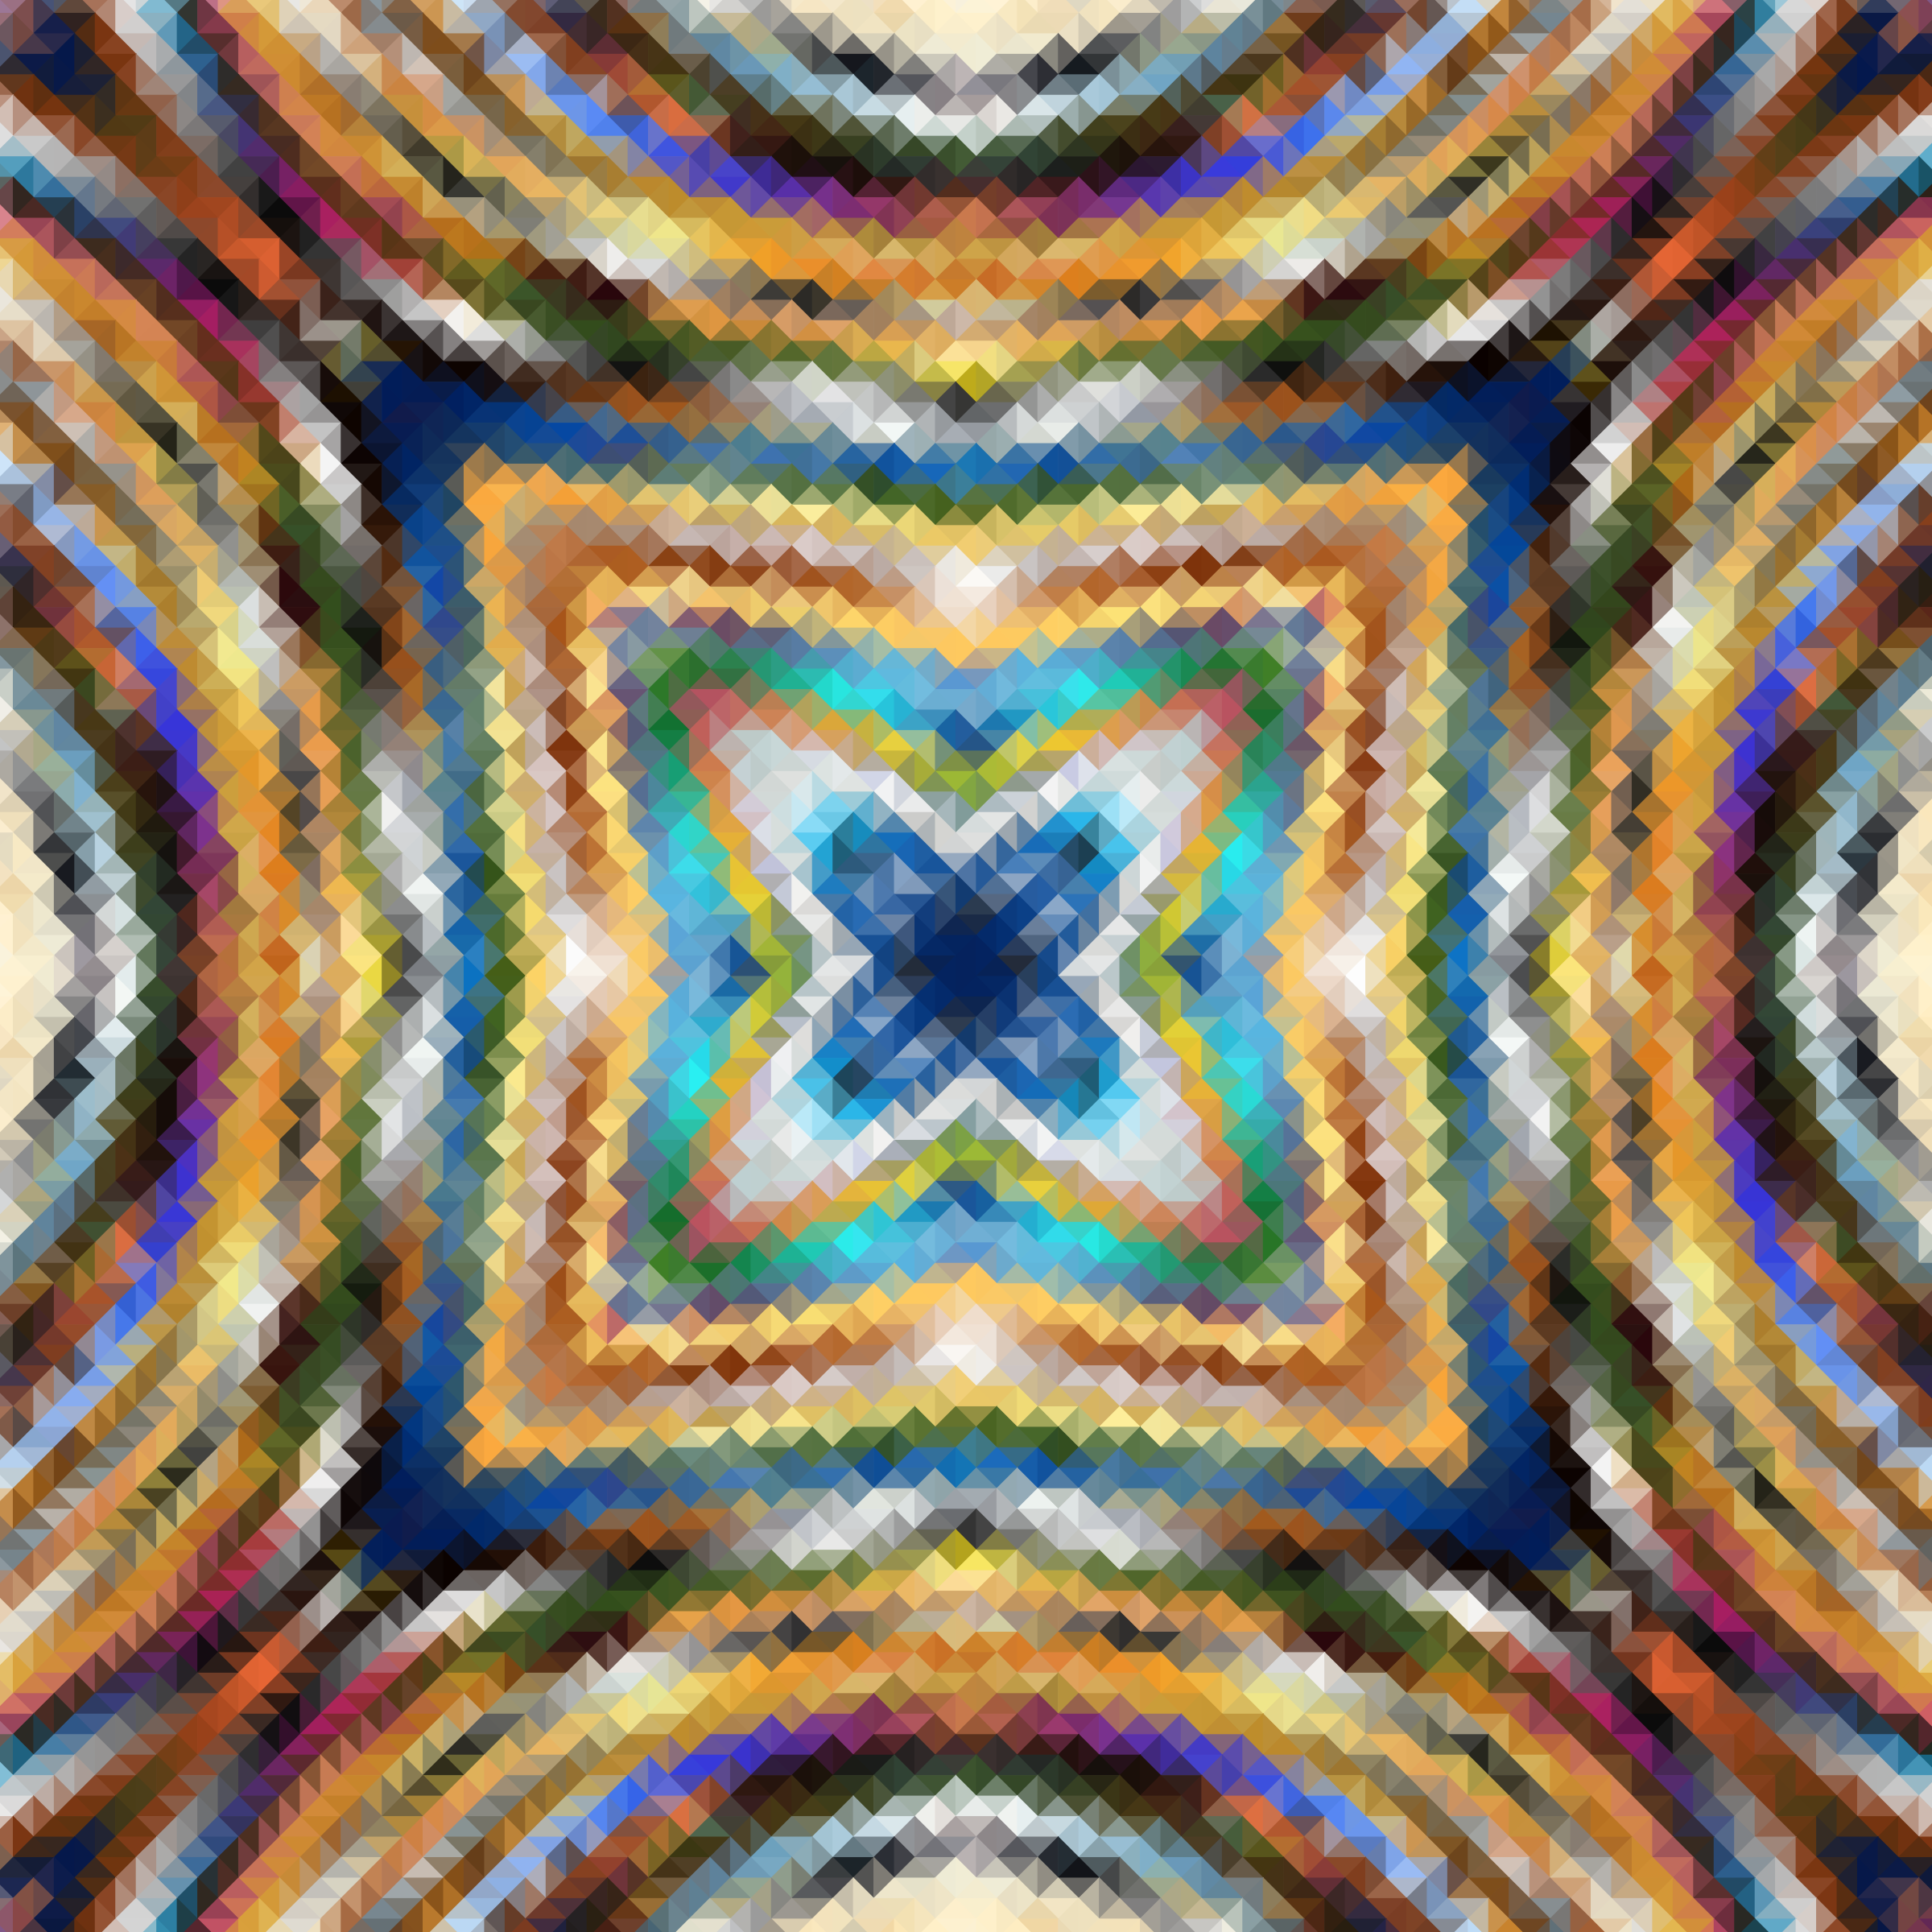 Psychedelic Square Mosaic by GDJ